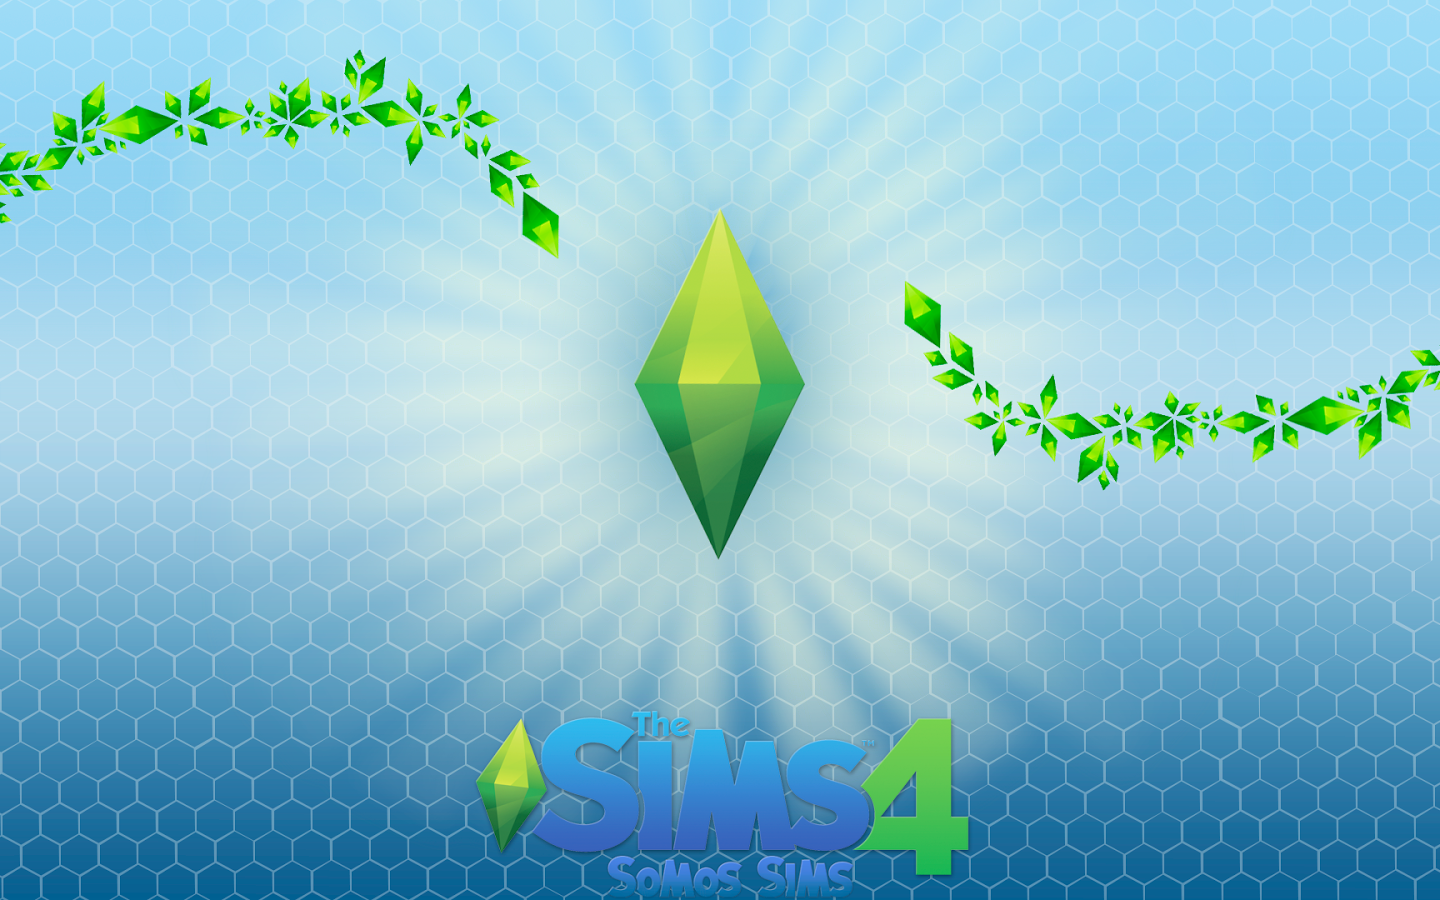 Free Download Sims 4 Wallpaper Hd Full Hd Pictures 1600x900 For